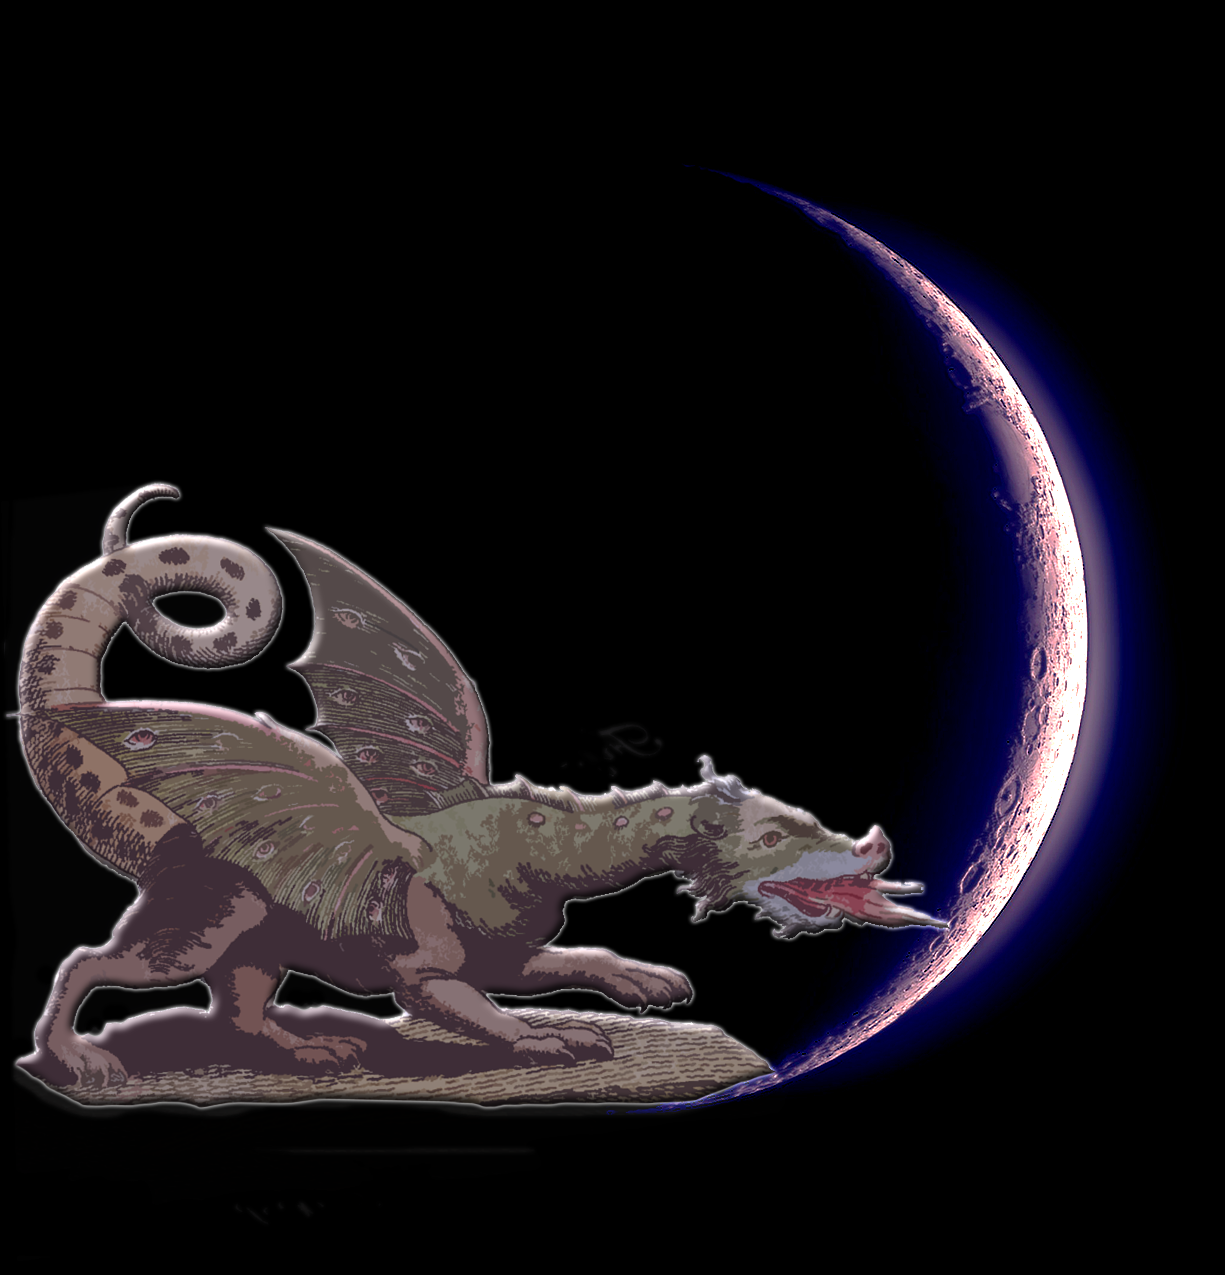 Retro Reptile Moon Kittysol